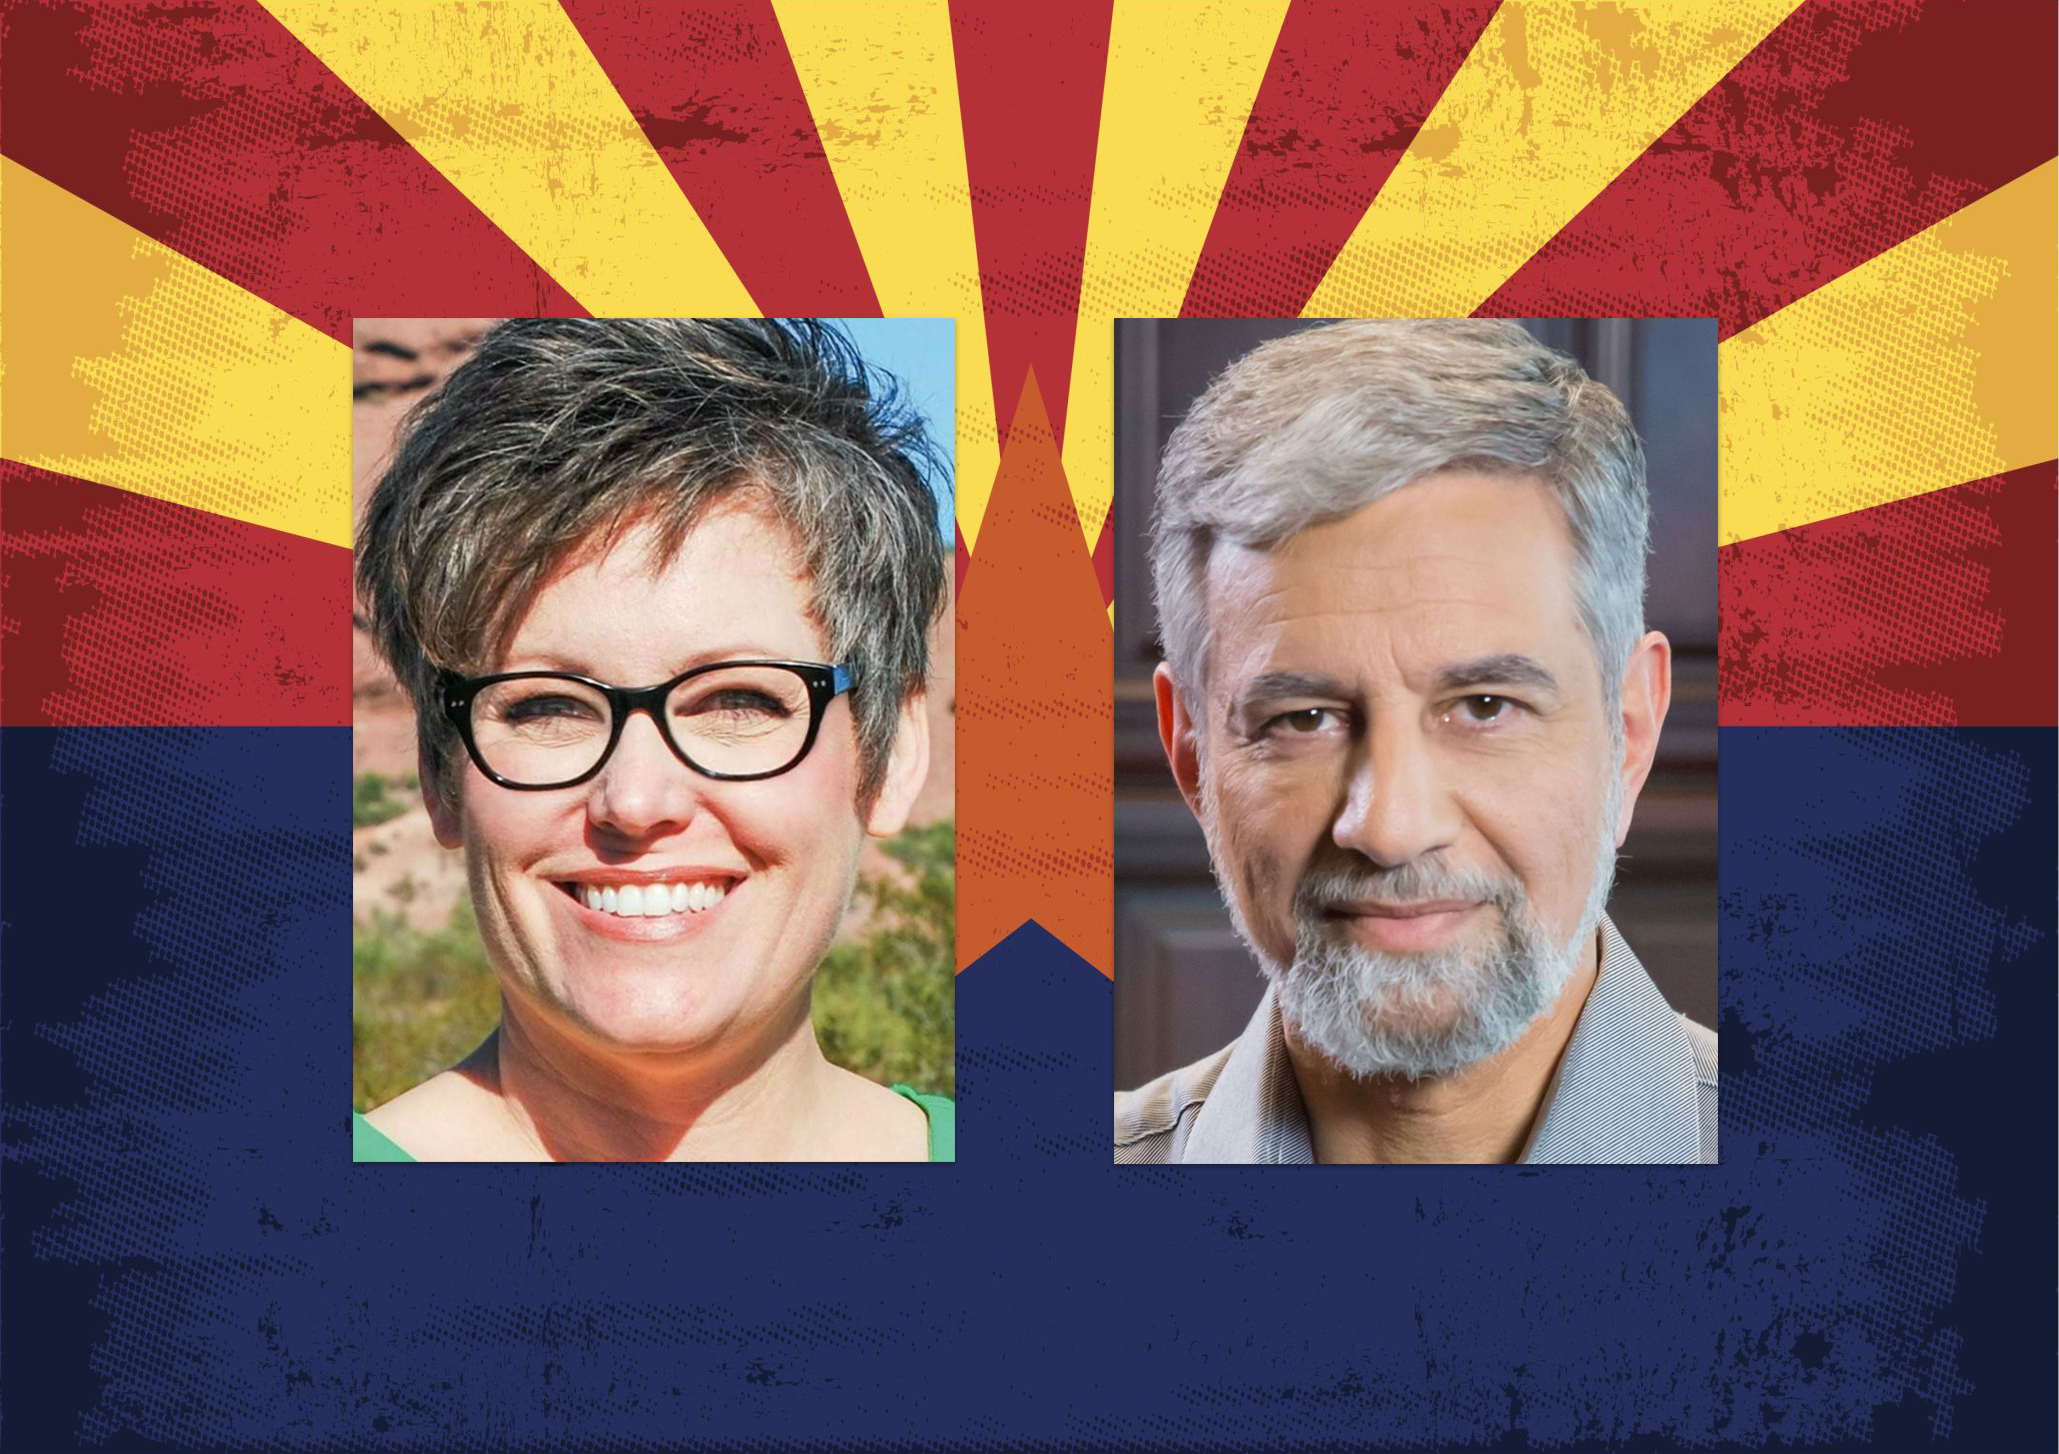 Secretary of state: Steve Gaynor and Katie Hobbs remain neck-and-neck in Arizona's closest race | AZ Central